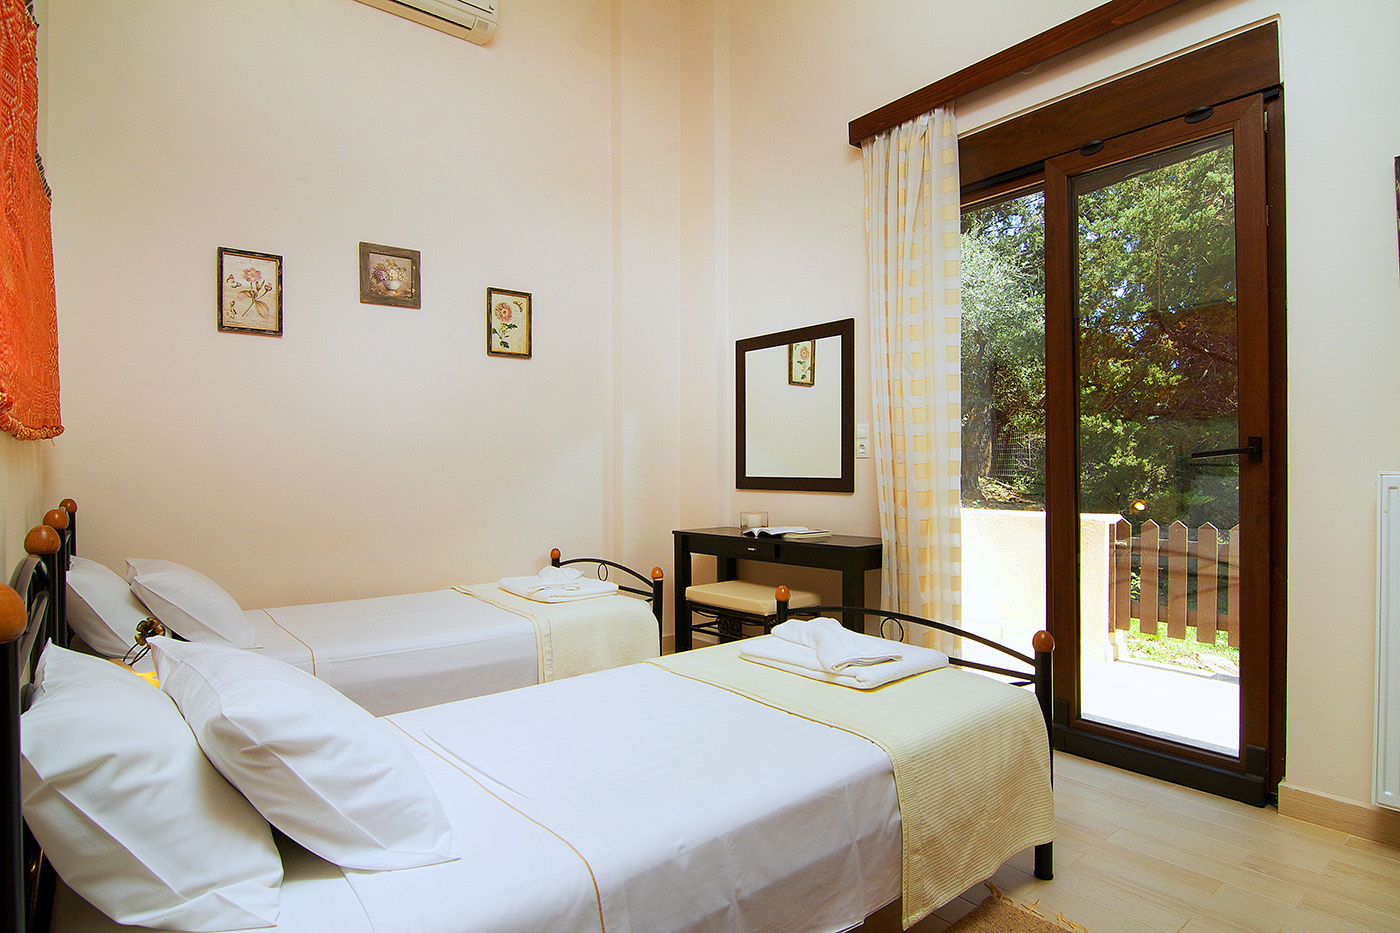 Rooms - Bedroom with 2 single beds with access to outdoor